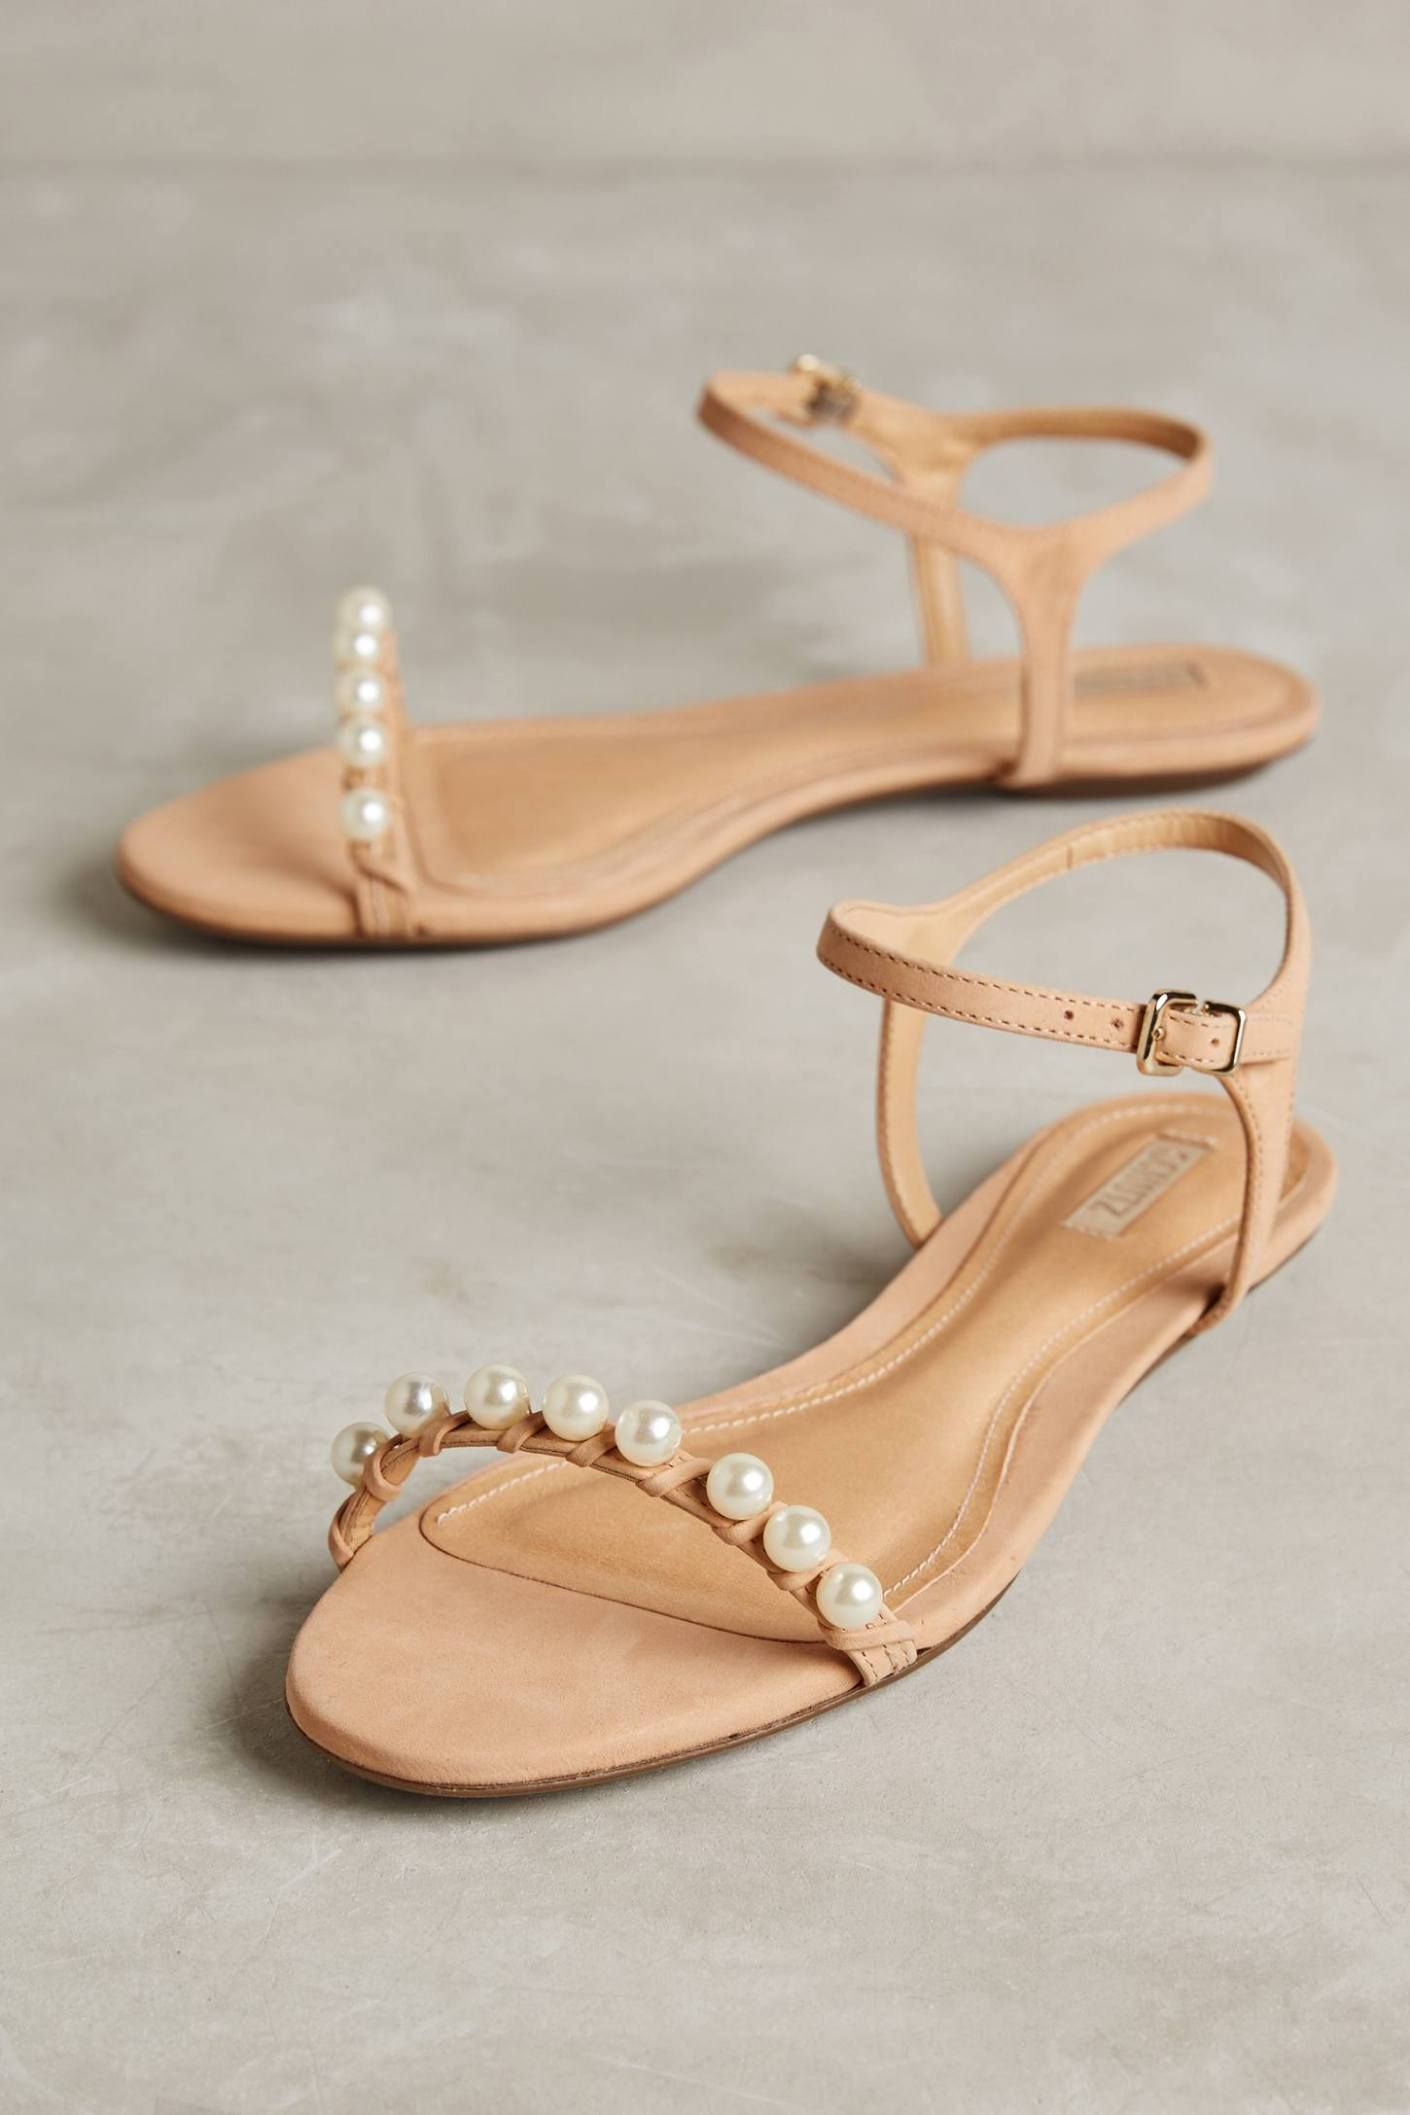 f84e06abc1dbc Ideas Wedding Shoes Pearl Bridal Accessories For 2019. Pearled Darussa Flats  by Schutz #anthroregistry